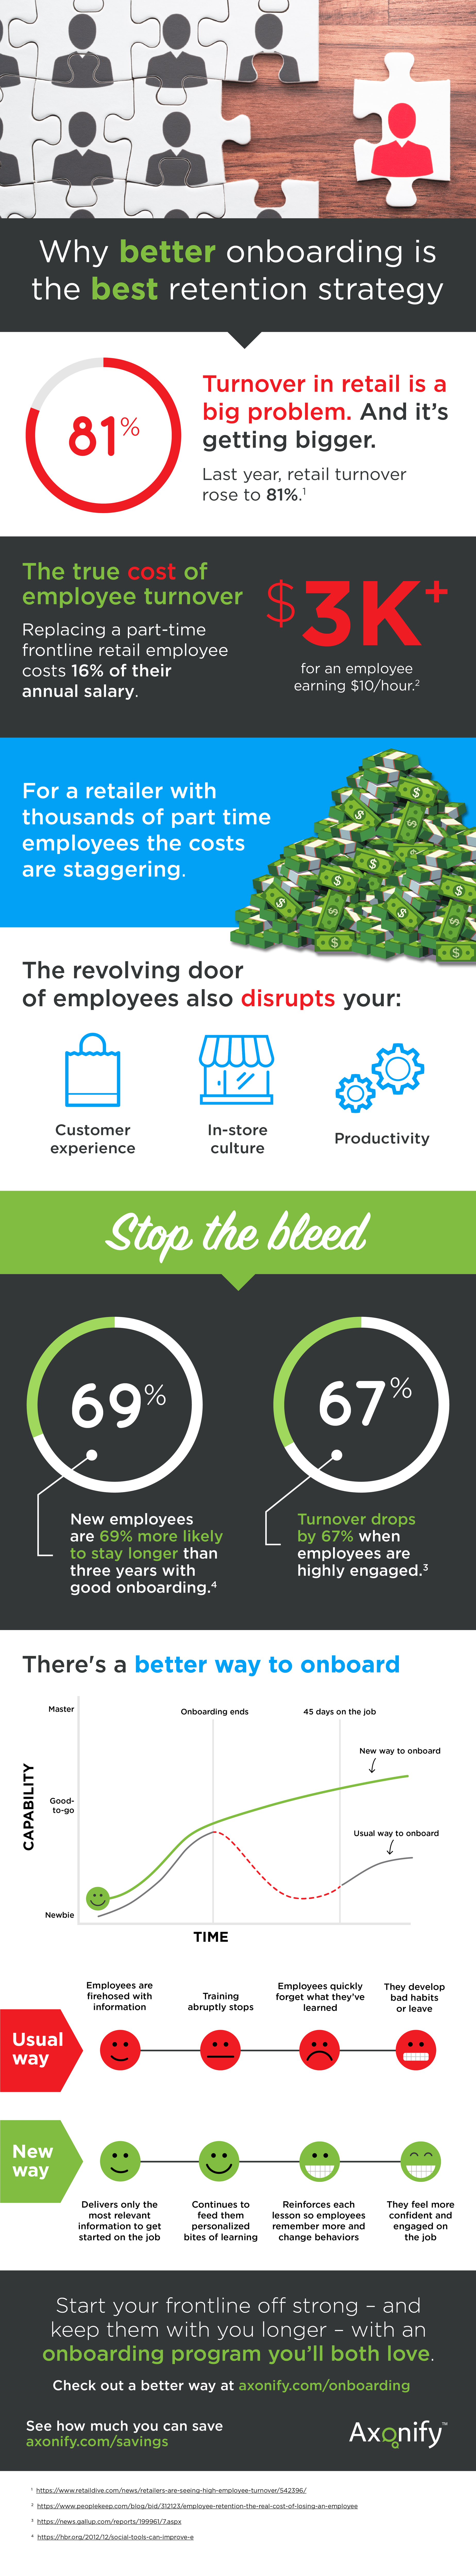 Infographic describing why better onboarding is the best employee retention strategy